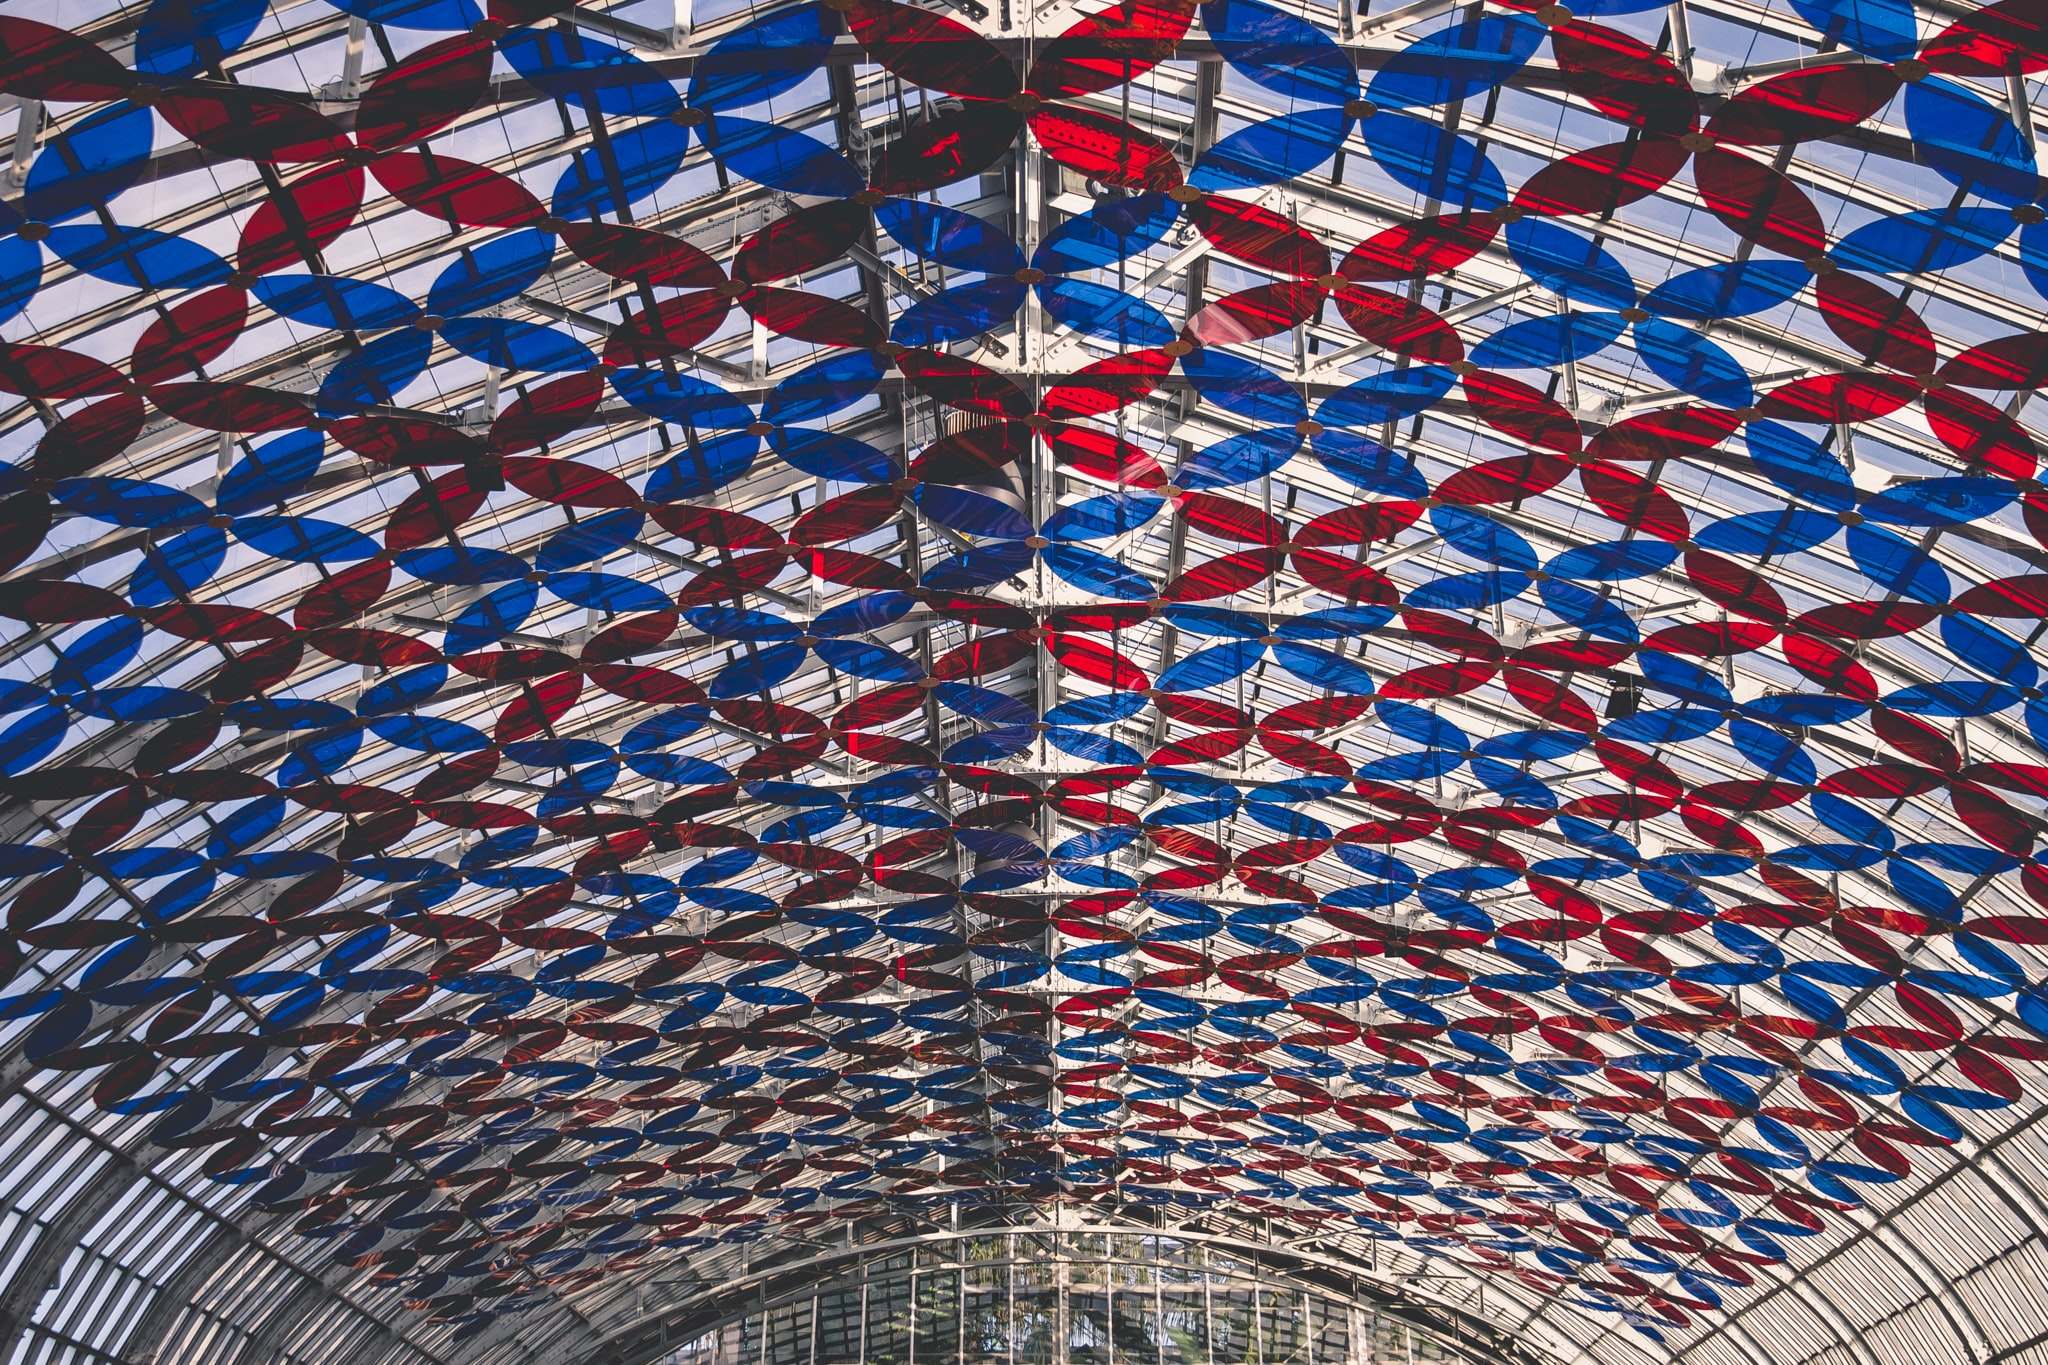 red and blue glass ceiling